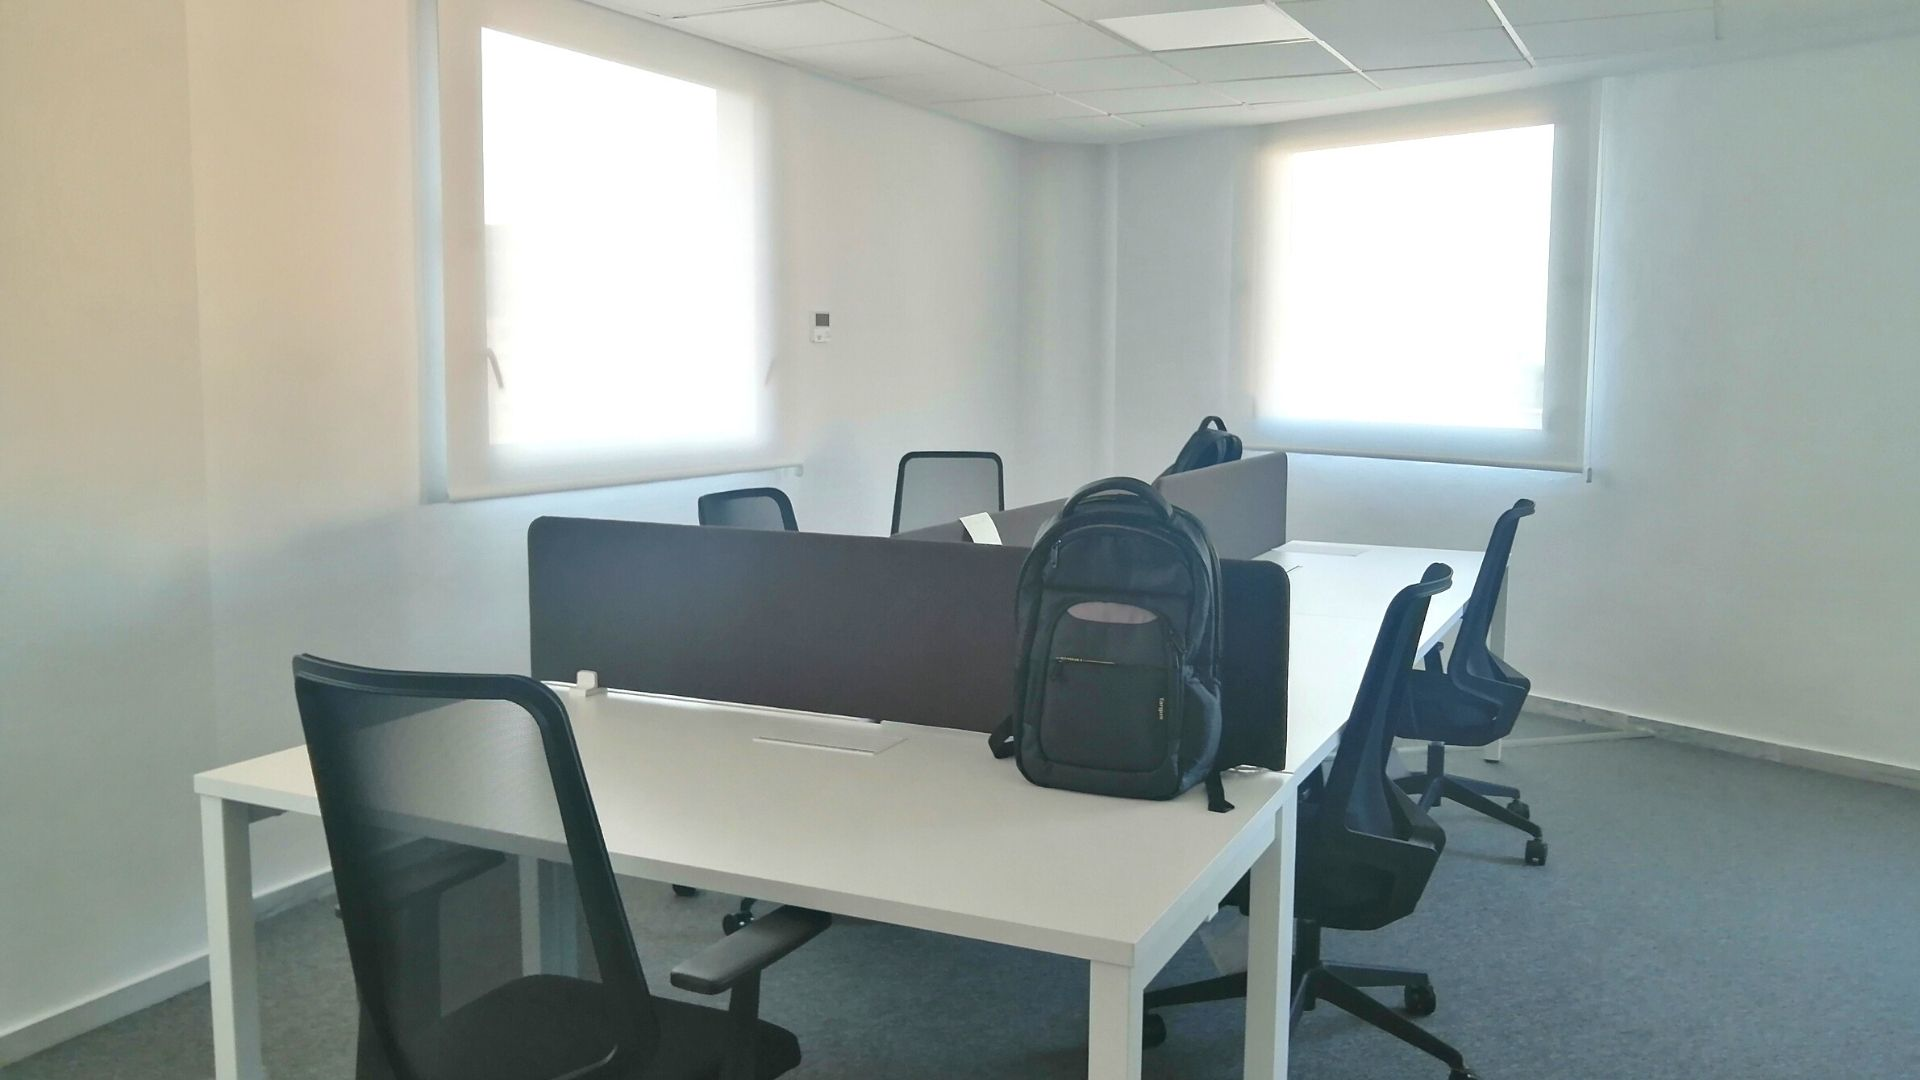 Our new Adessa office in Malaga is open! - office desks